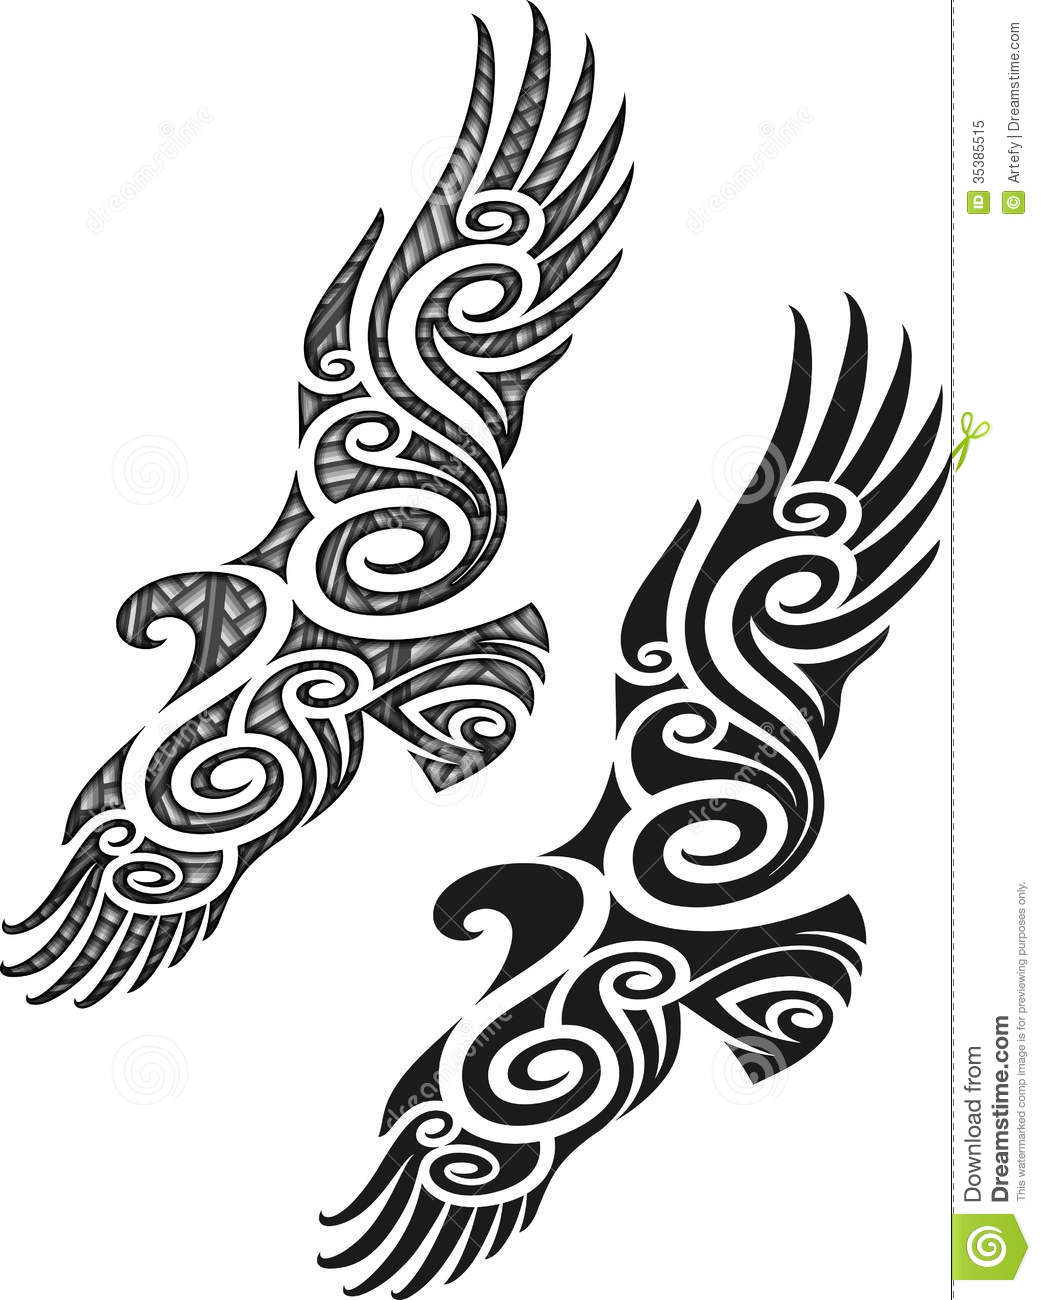 Maori Tattoo Pattern - Eagle Stock Vector - Illustration of ...